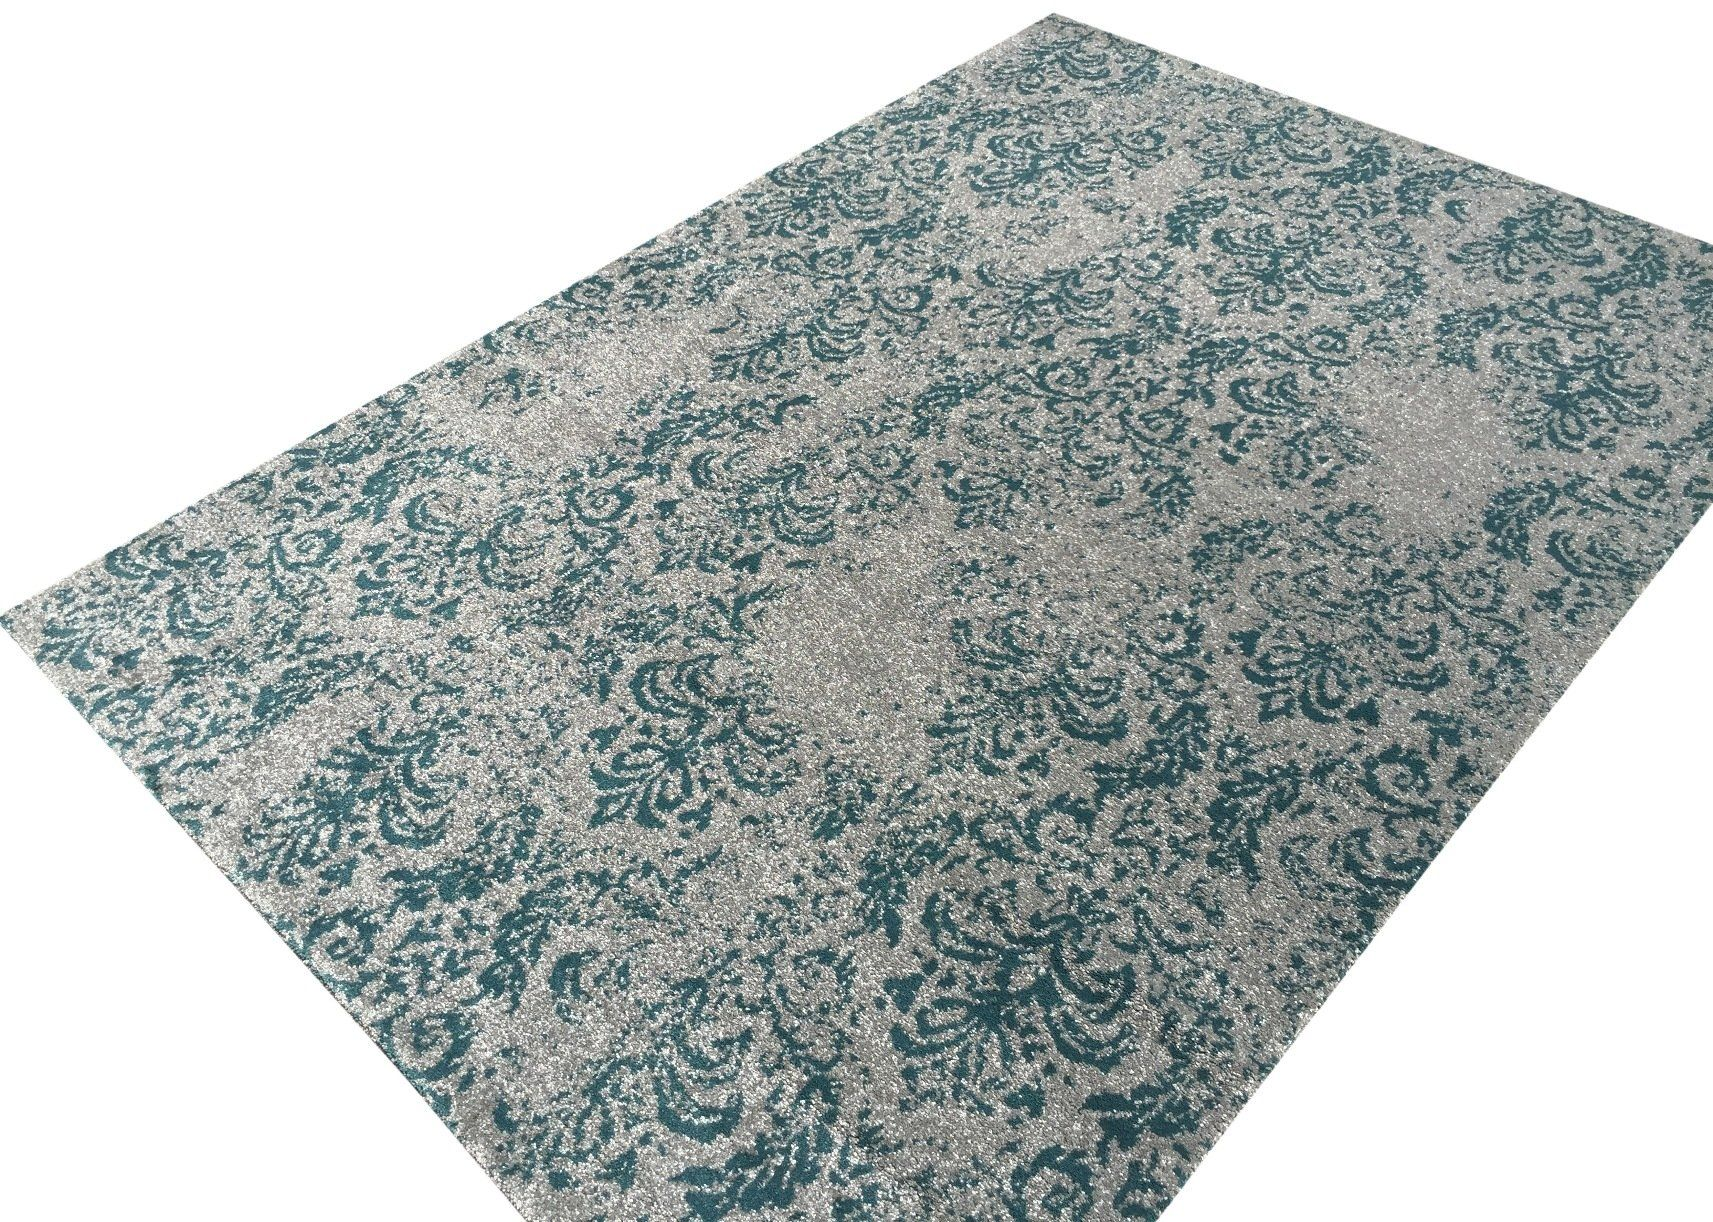 """Amazon.com - Vintage Floral Trellis 8'3"""" x 9'10"""" (99 inch by 118 inch) Teal-Blue Grey Area Rug Zahra Collection Luxury Frieze Pile -"""